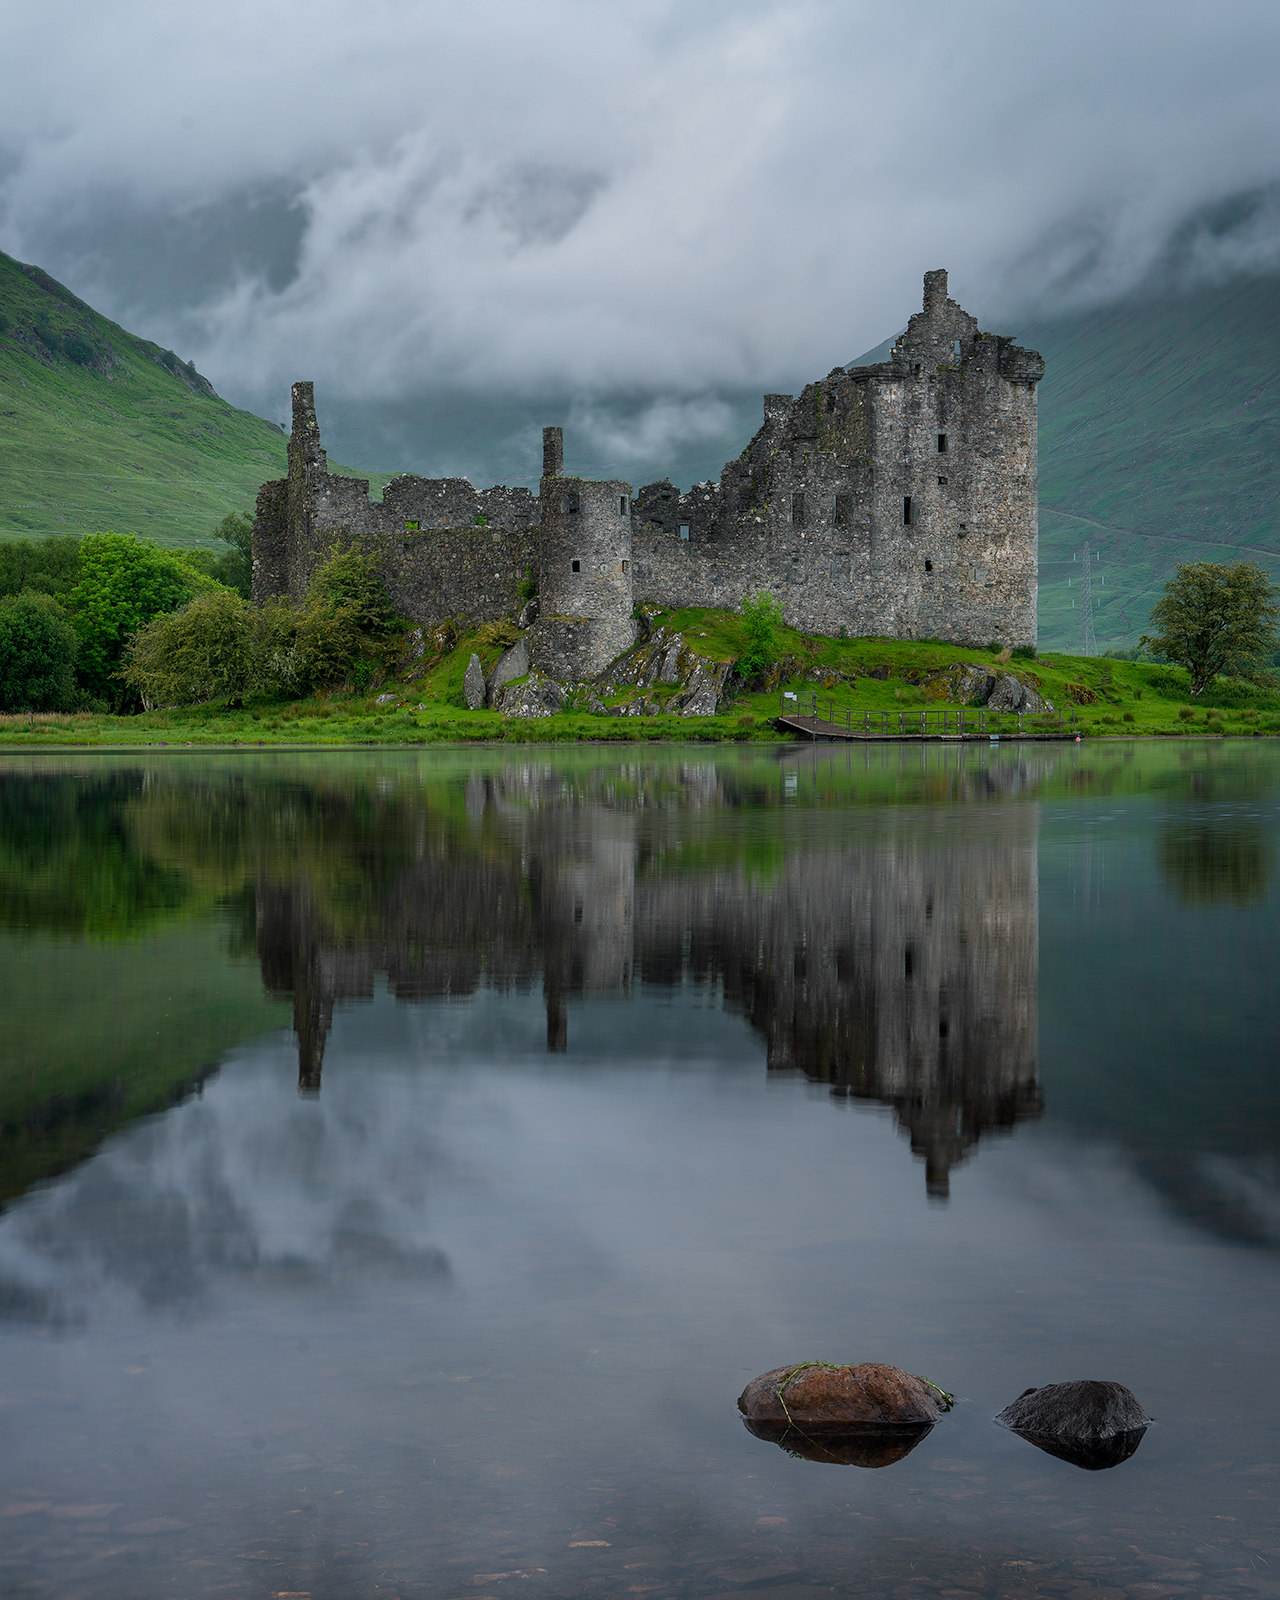 Sunset at Kilchurn Castle on the Scotland Photography Workshop